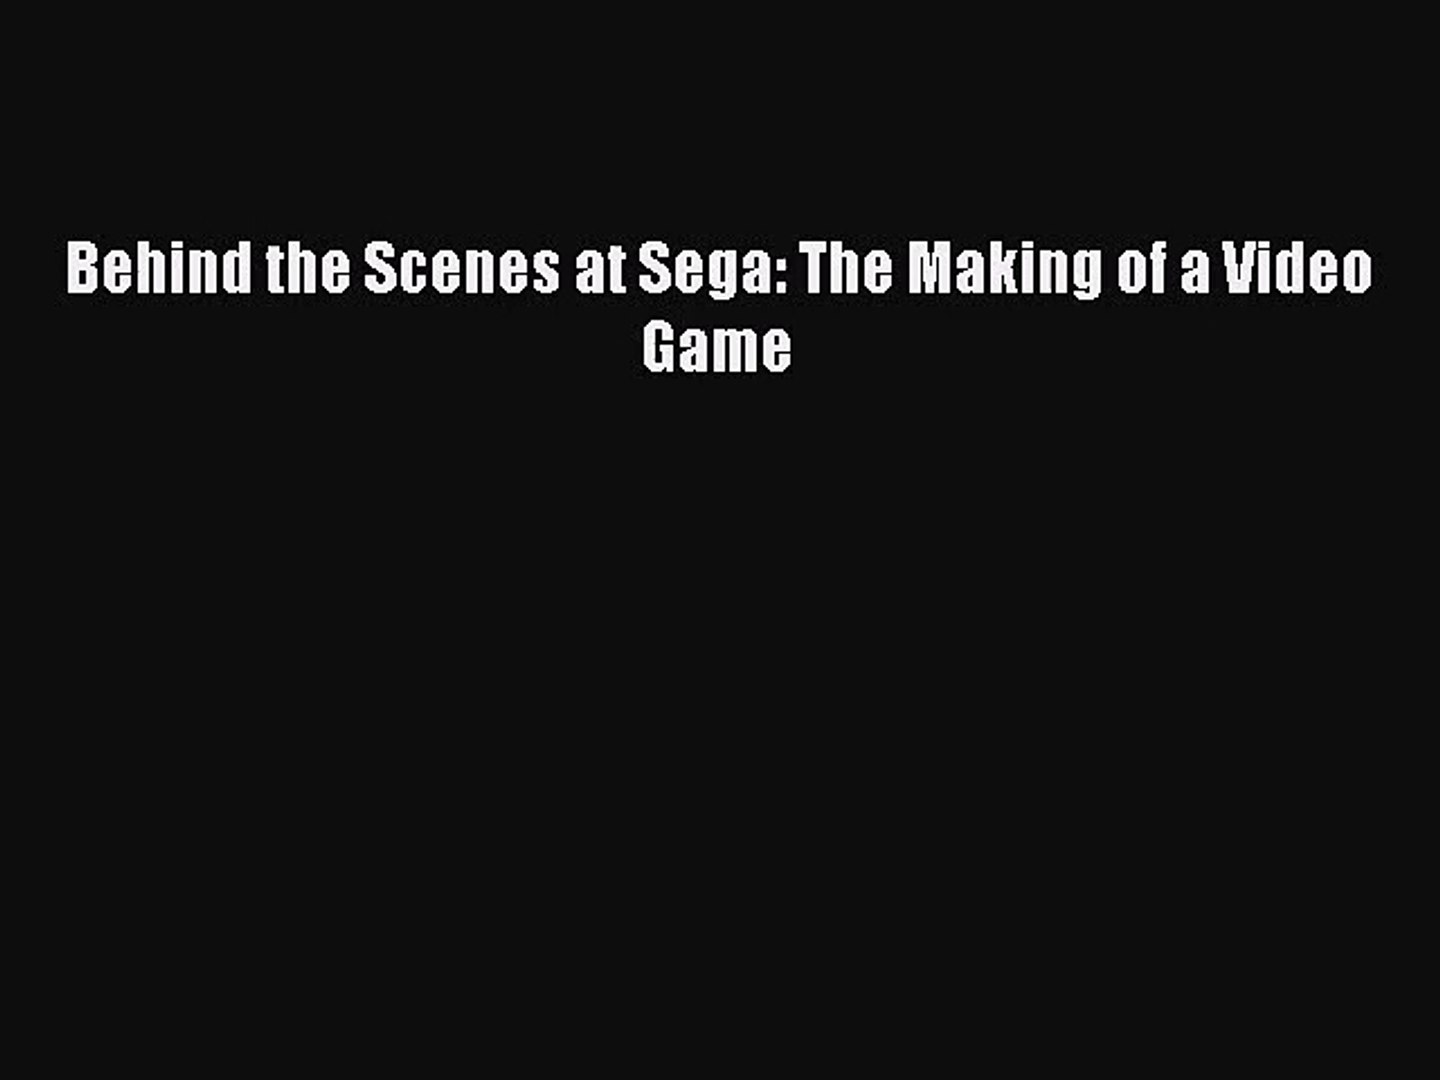 Behind the Scenes at Sega: The Making of a Video Game [Read] Full Ebook